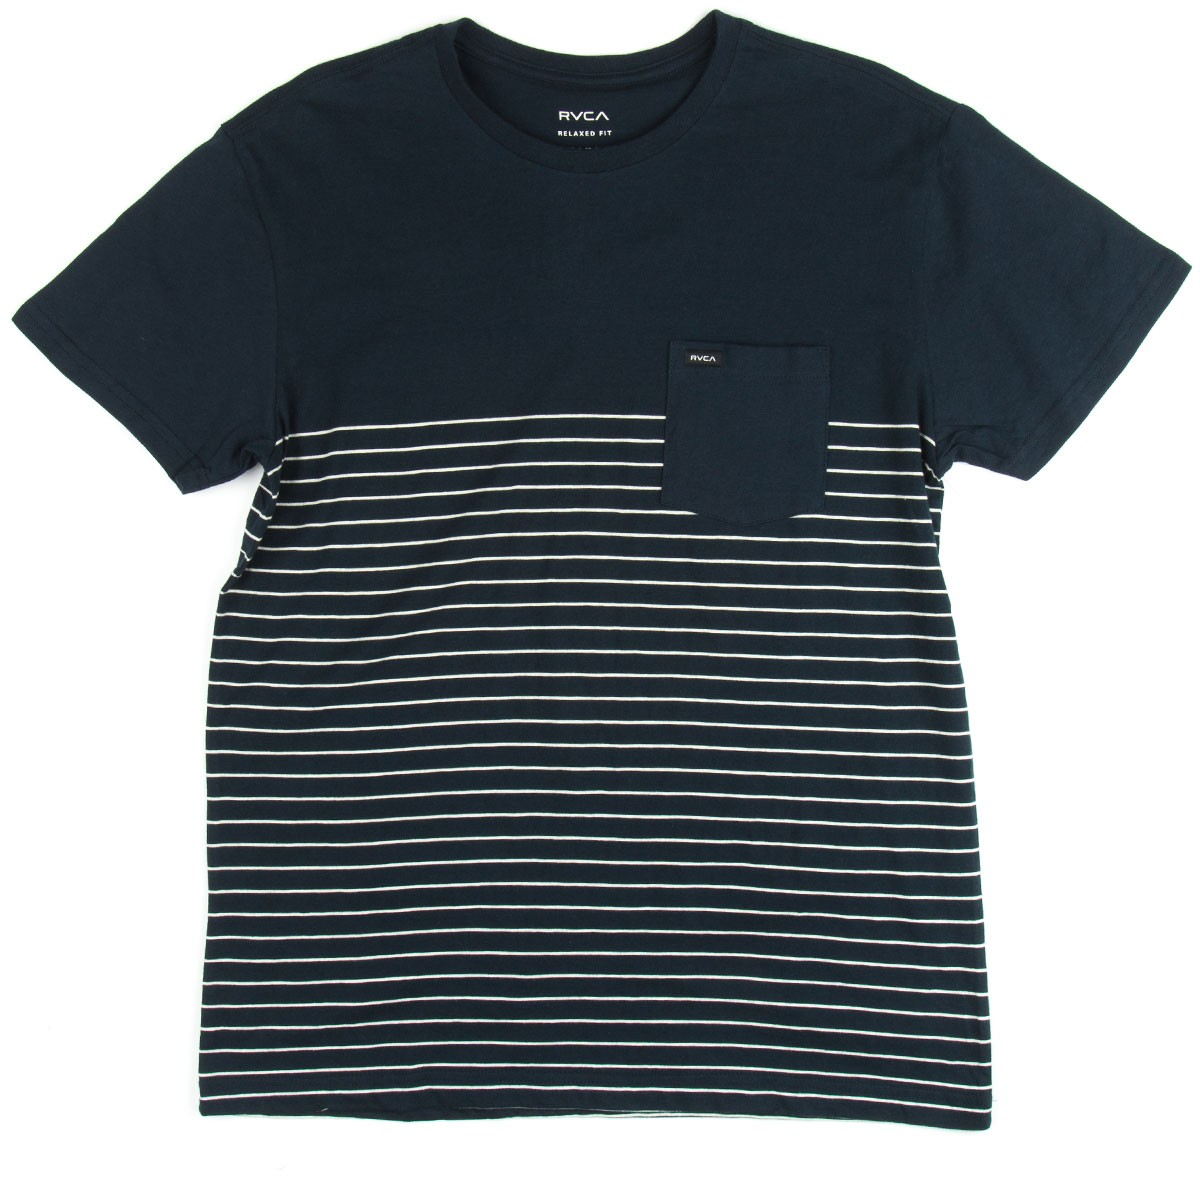 RVCA Switch Up Crew T-Shirt - Carbon